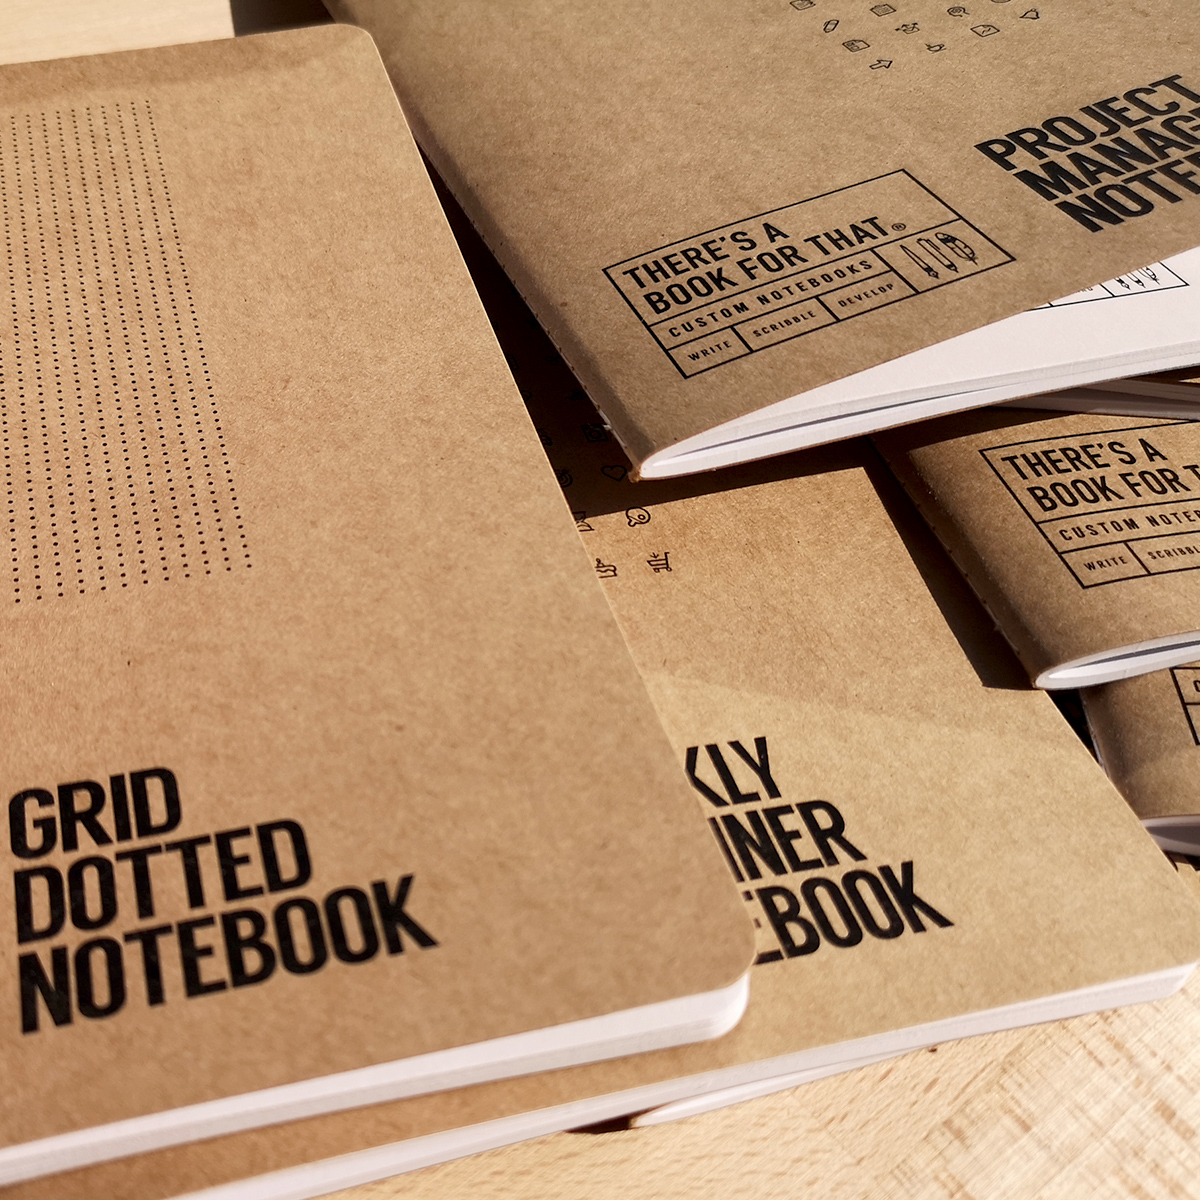 Journaling-Theres-a-book-for-that-Grid-Dotted-Notebook